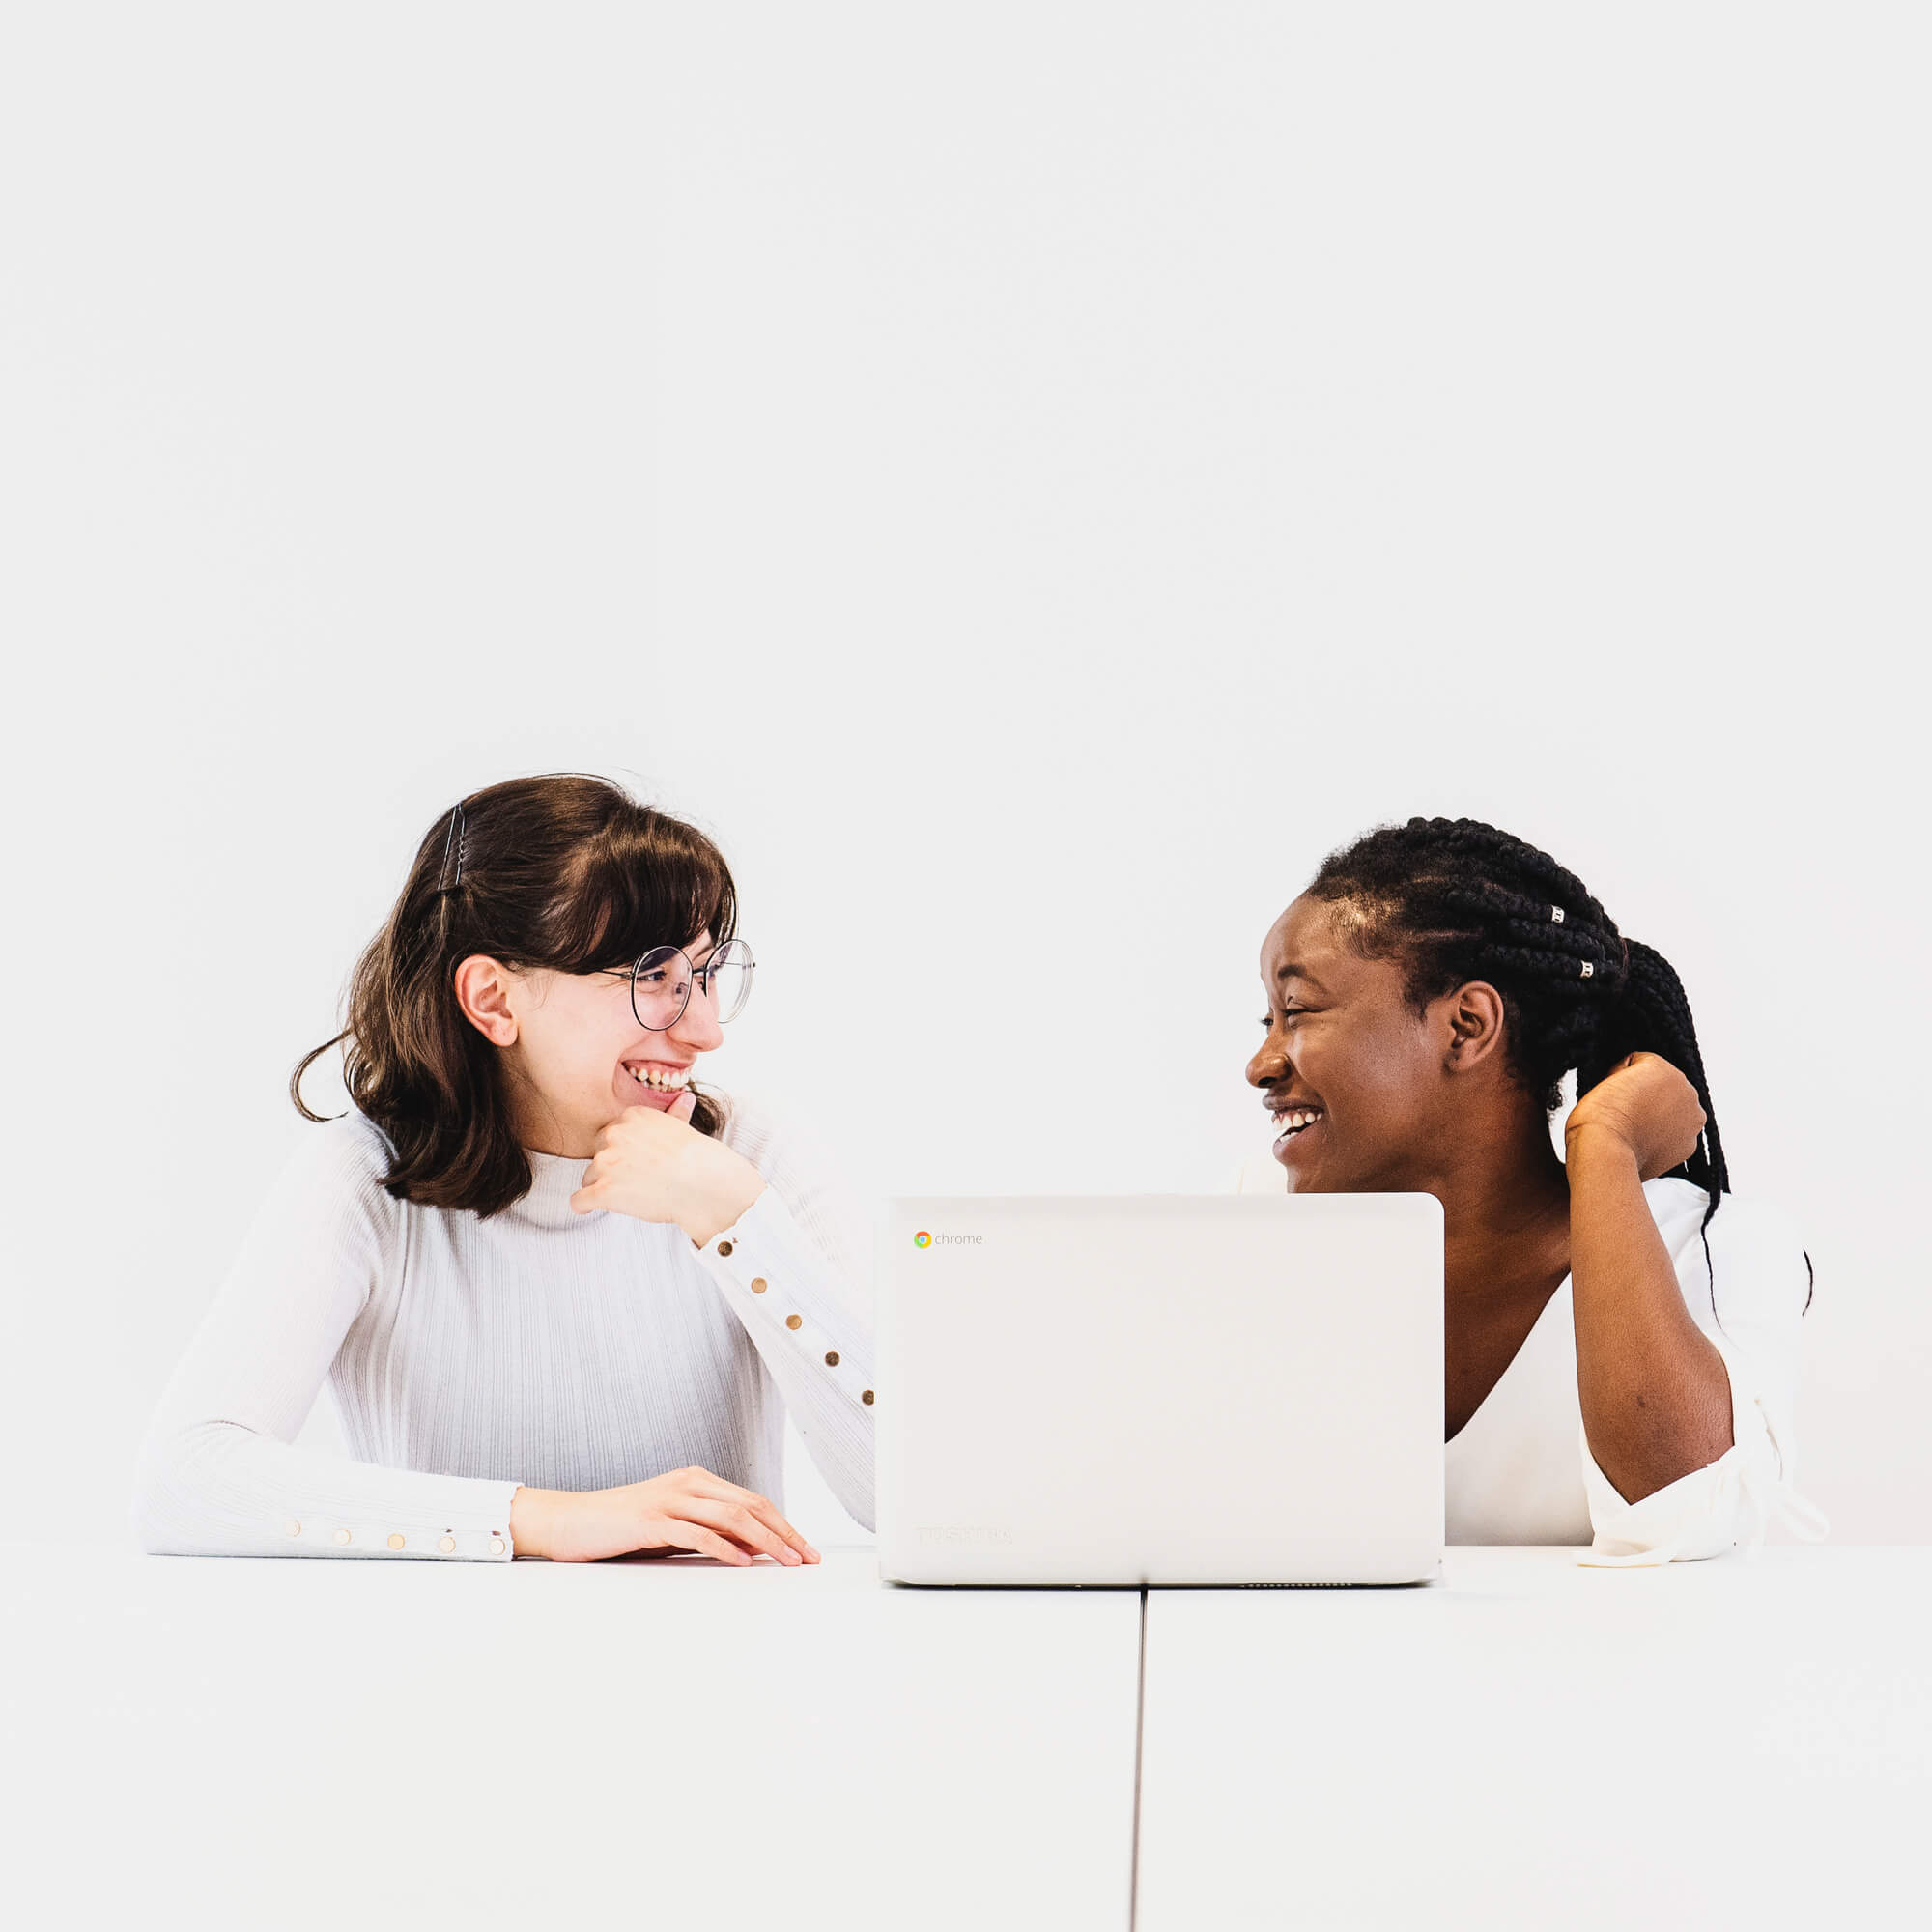 Image of two girls in front of a laptop chatting